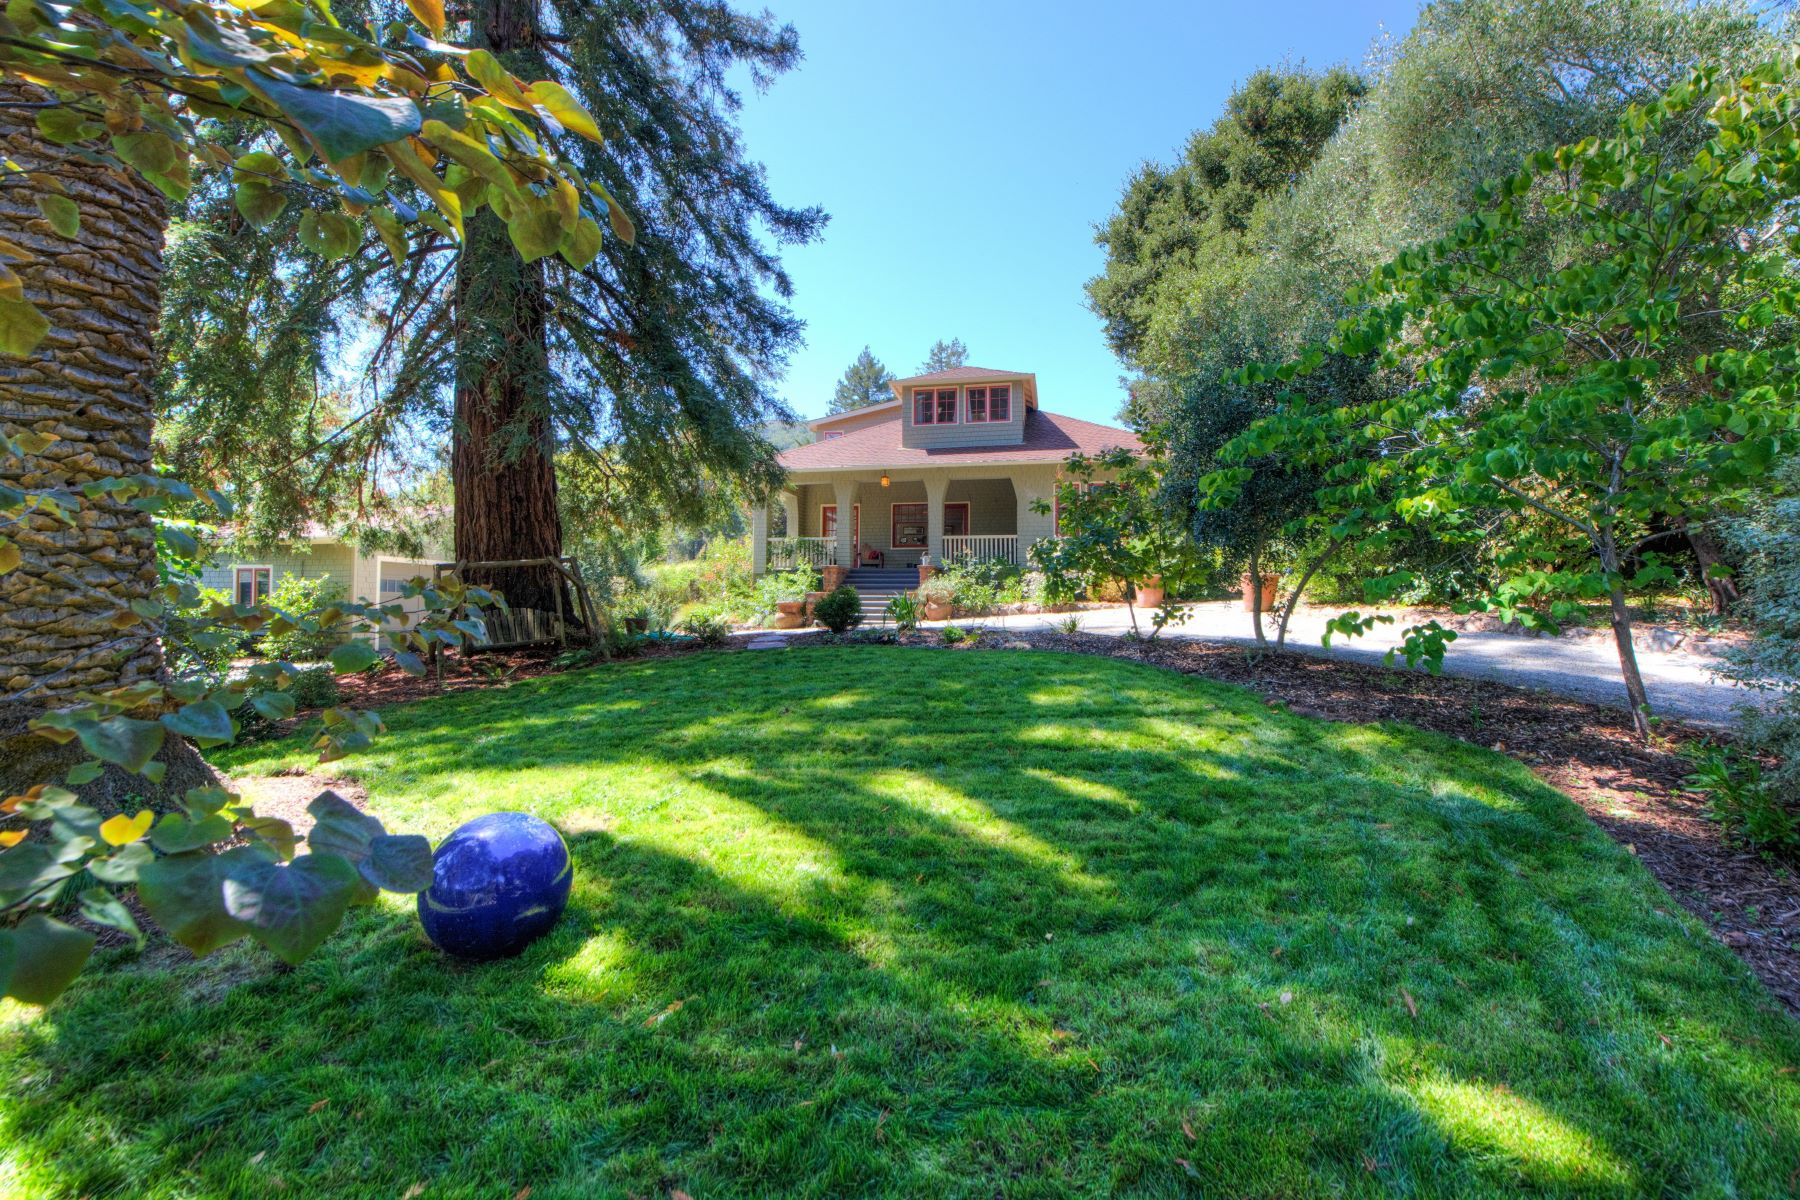 Single Family Home for Sale at A Hidden Treasure 256 Crescent Road San Anselmo, California 94960 United States